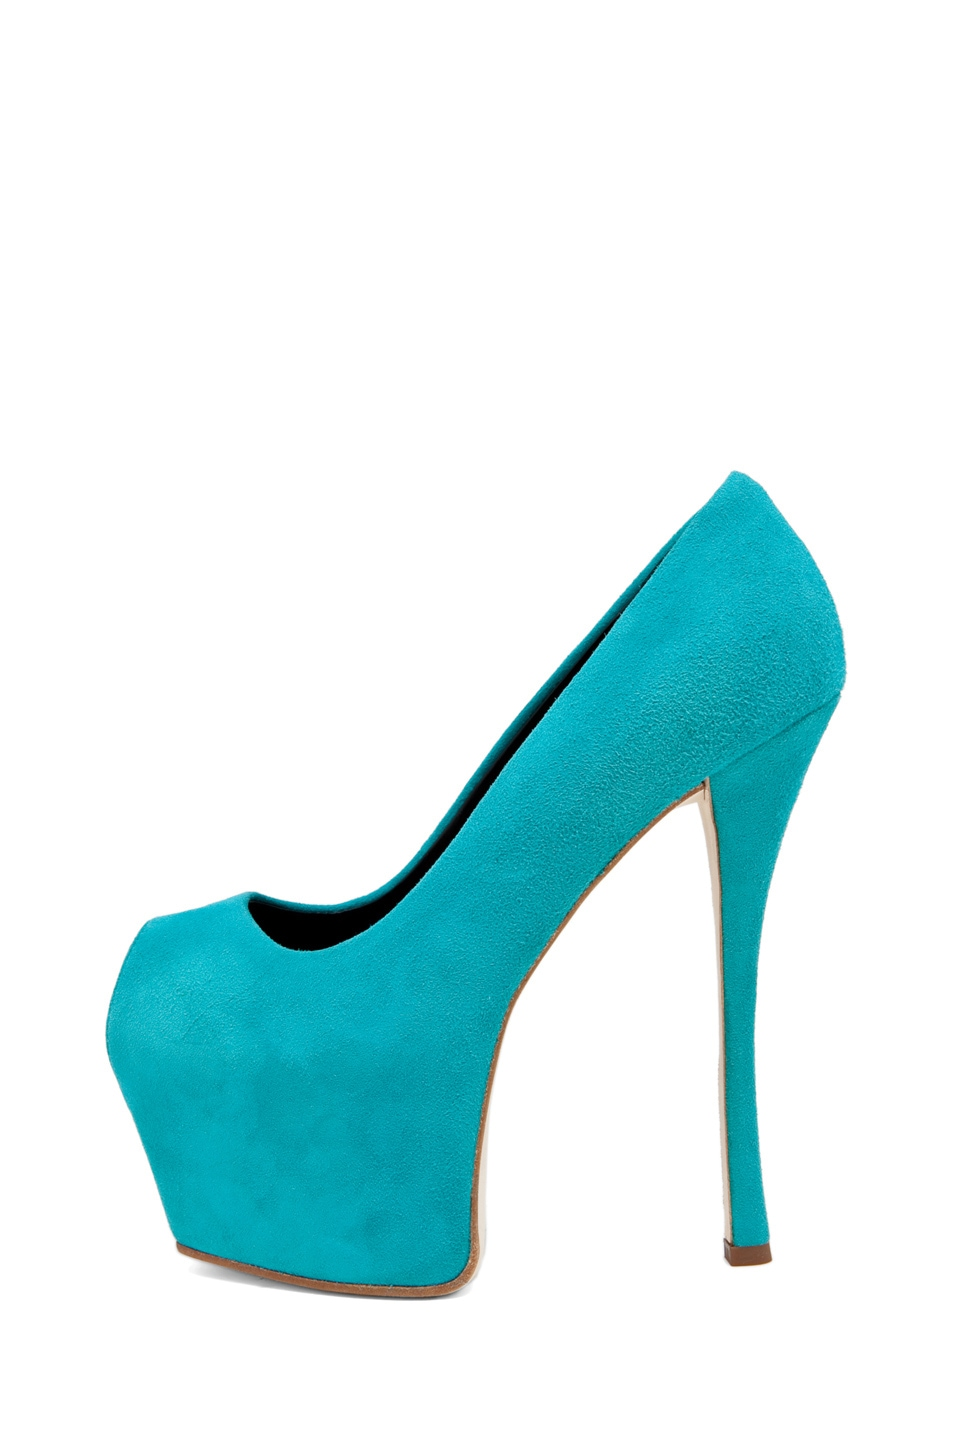 Image 1 of Giuseppe Zanotti Platform Pump in Turquoise